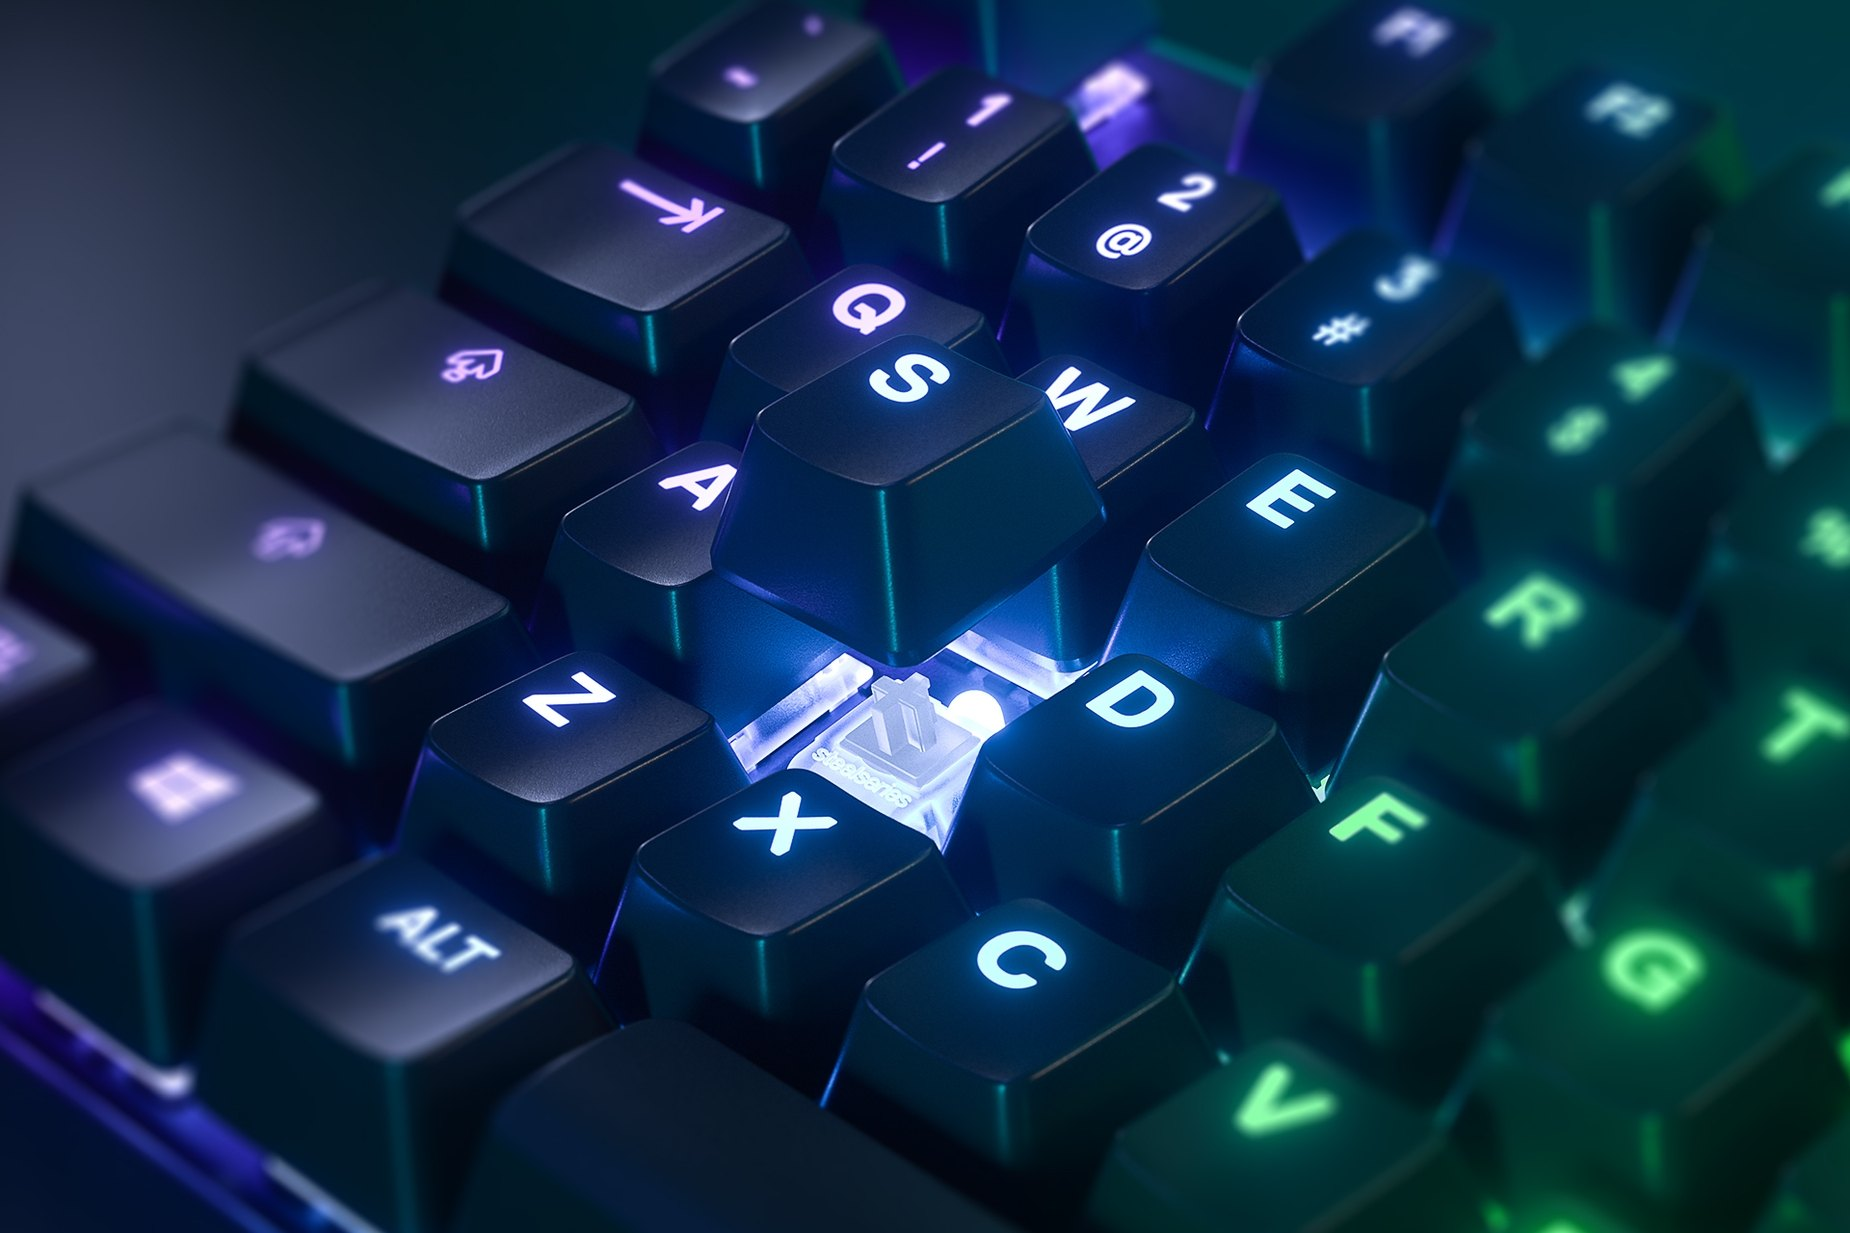 Zoomed in view of a single key on the Nordic - APEX PRO gaming keyboard, the key is raised up to show the SteelSeries OmniPoint Adjustable Mechanical Switch underneath